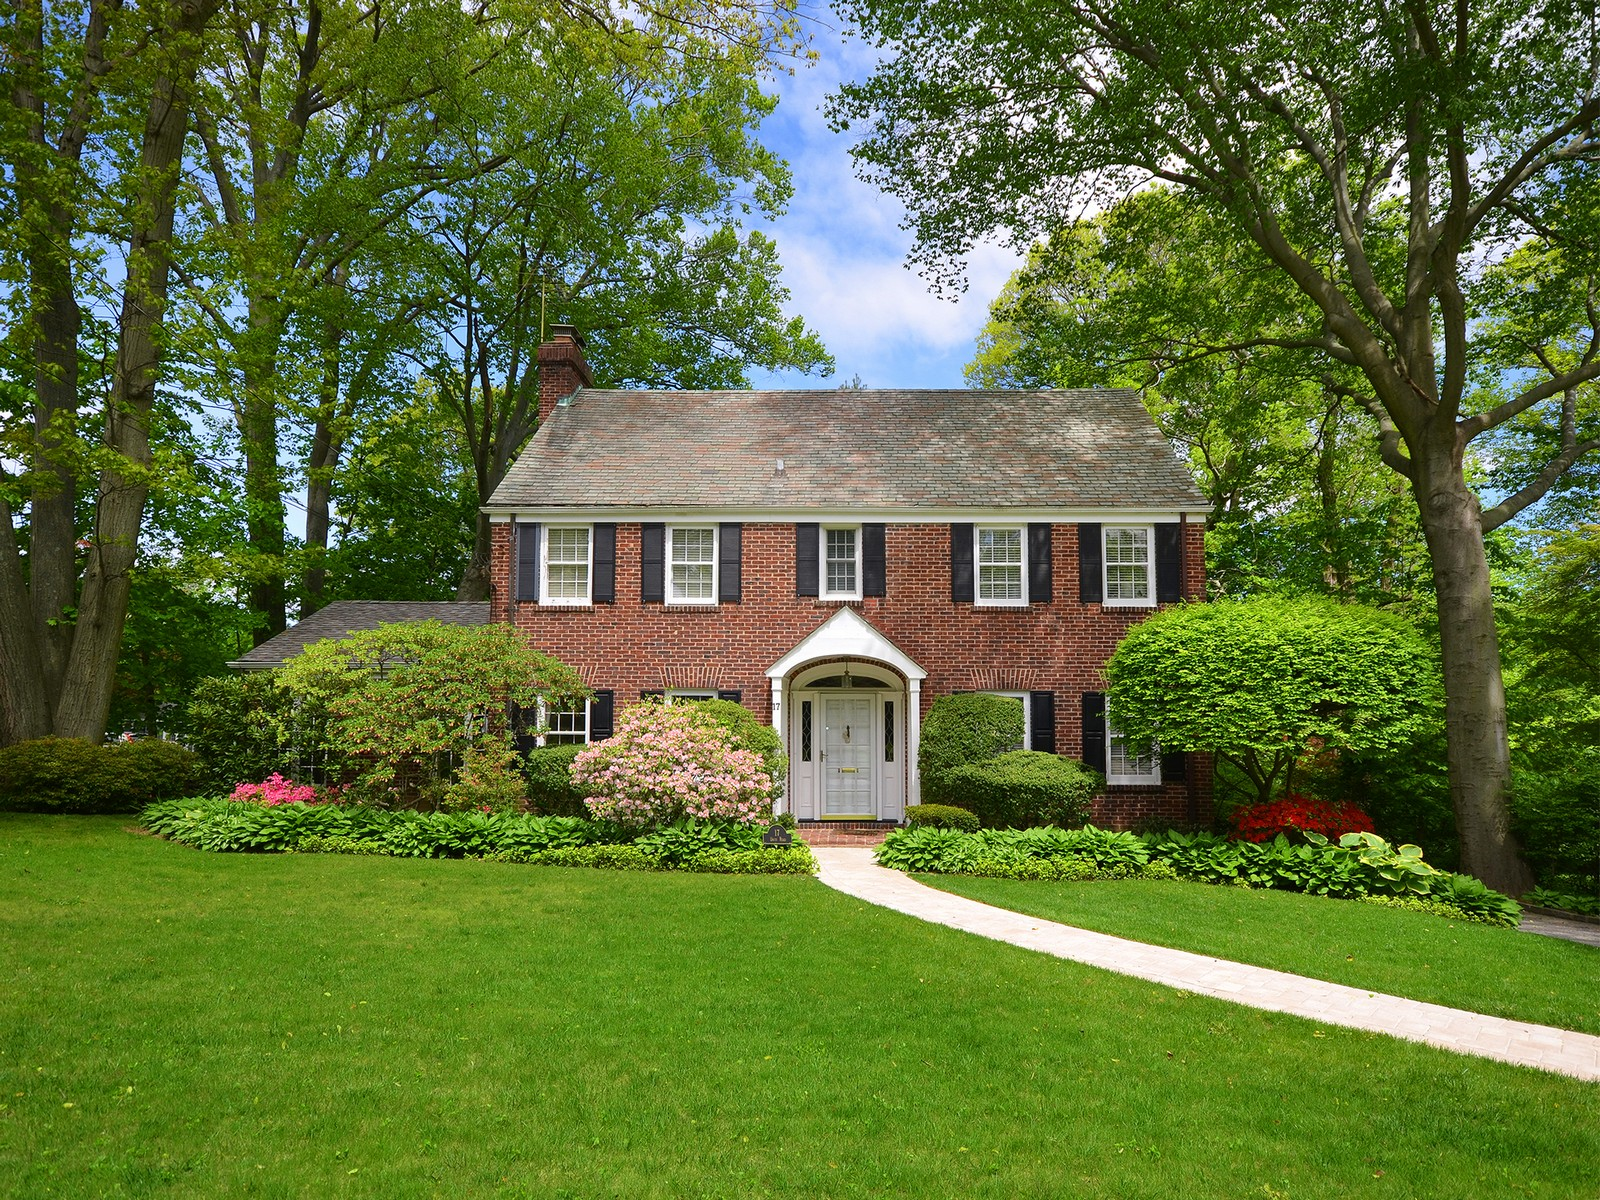 Single Family Home for Sale at Colonial 17 Davis Rd Port Washington, New York, 11050 United States